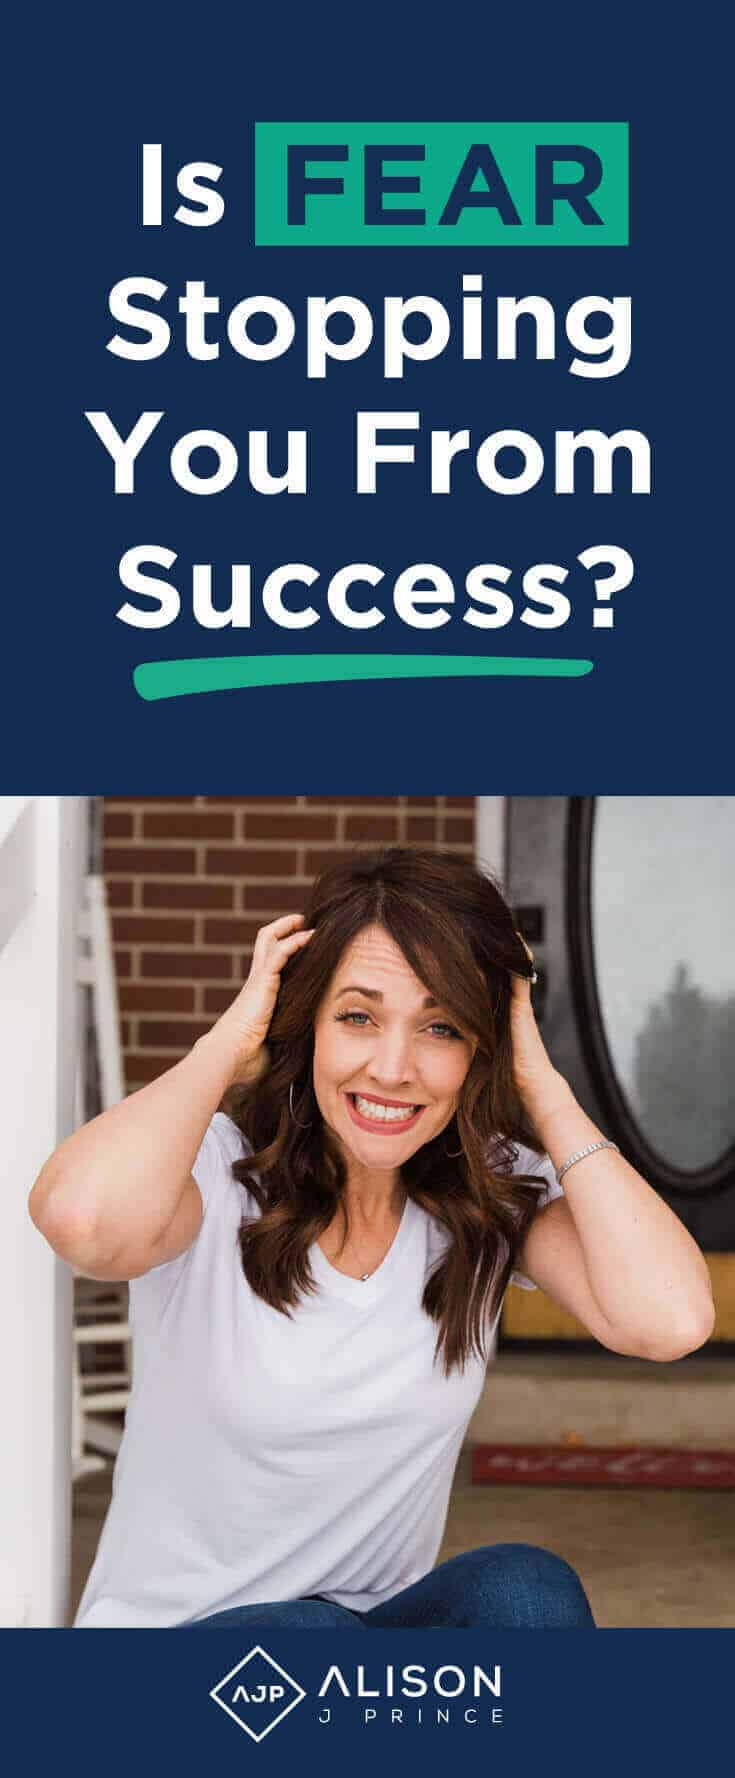 Overcome fear to increase your opportunities for success by Alison J. Prince